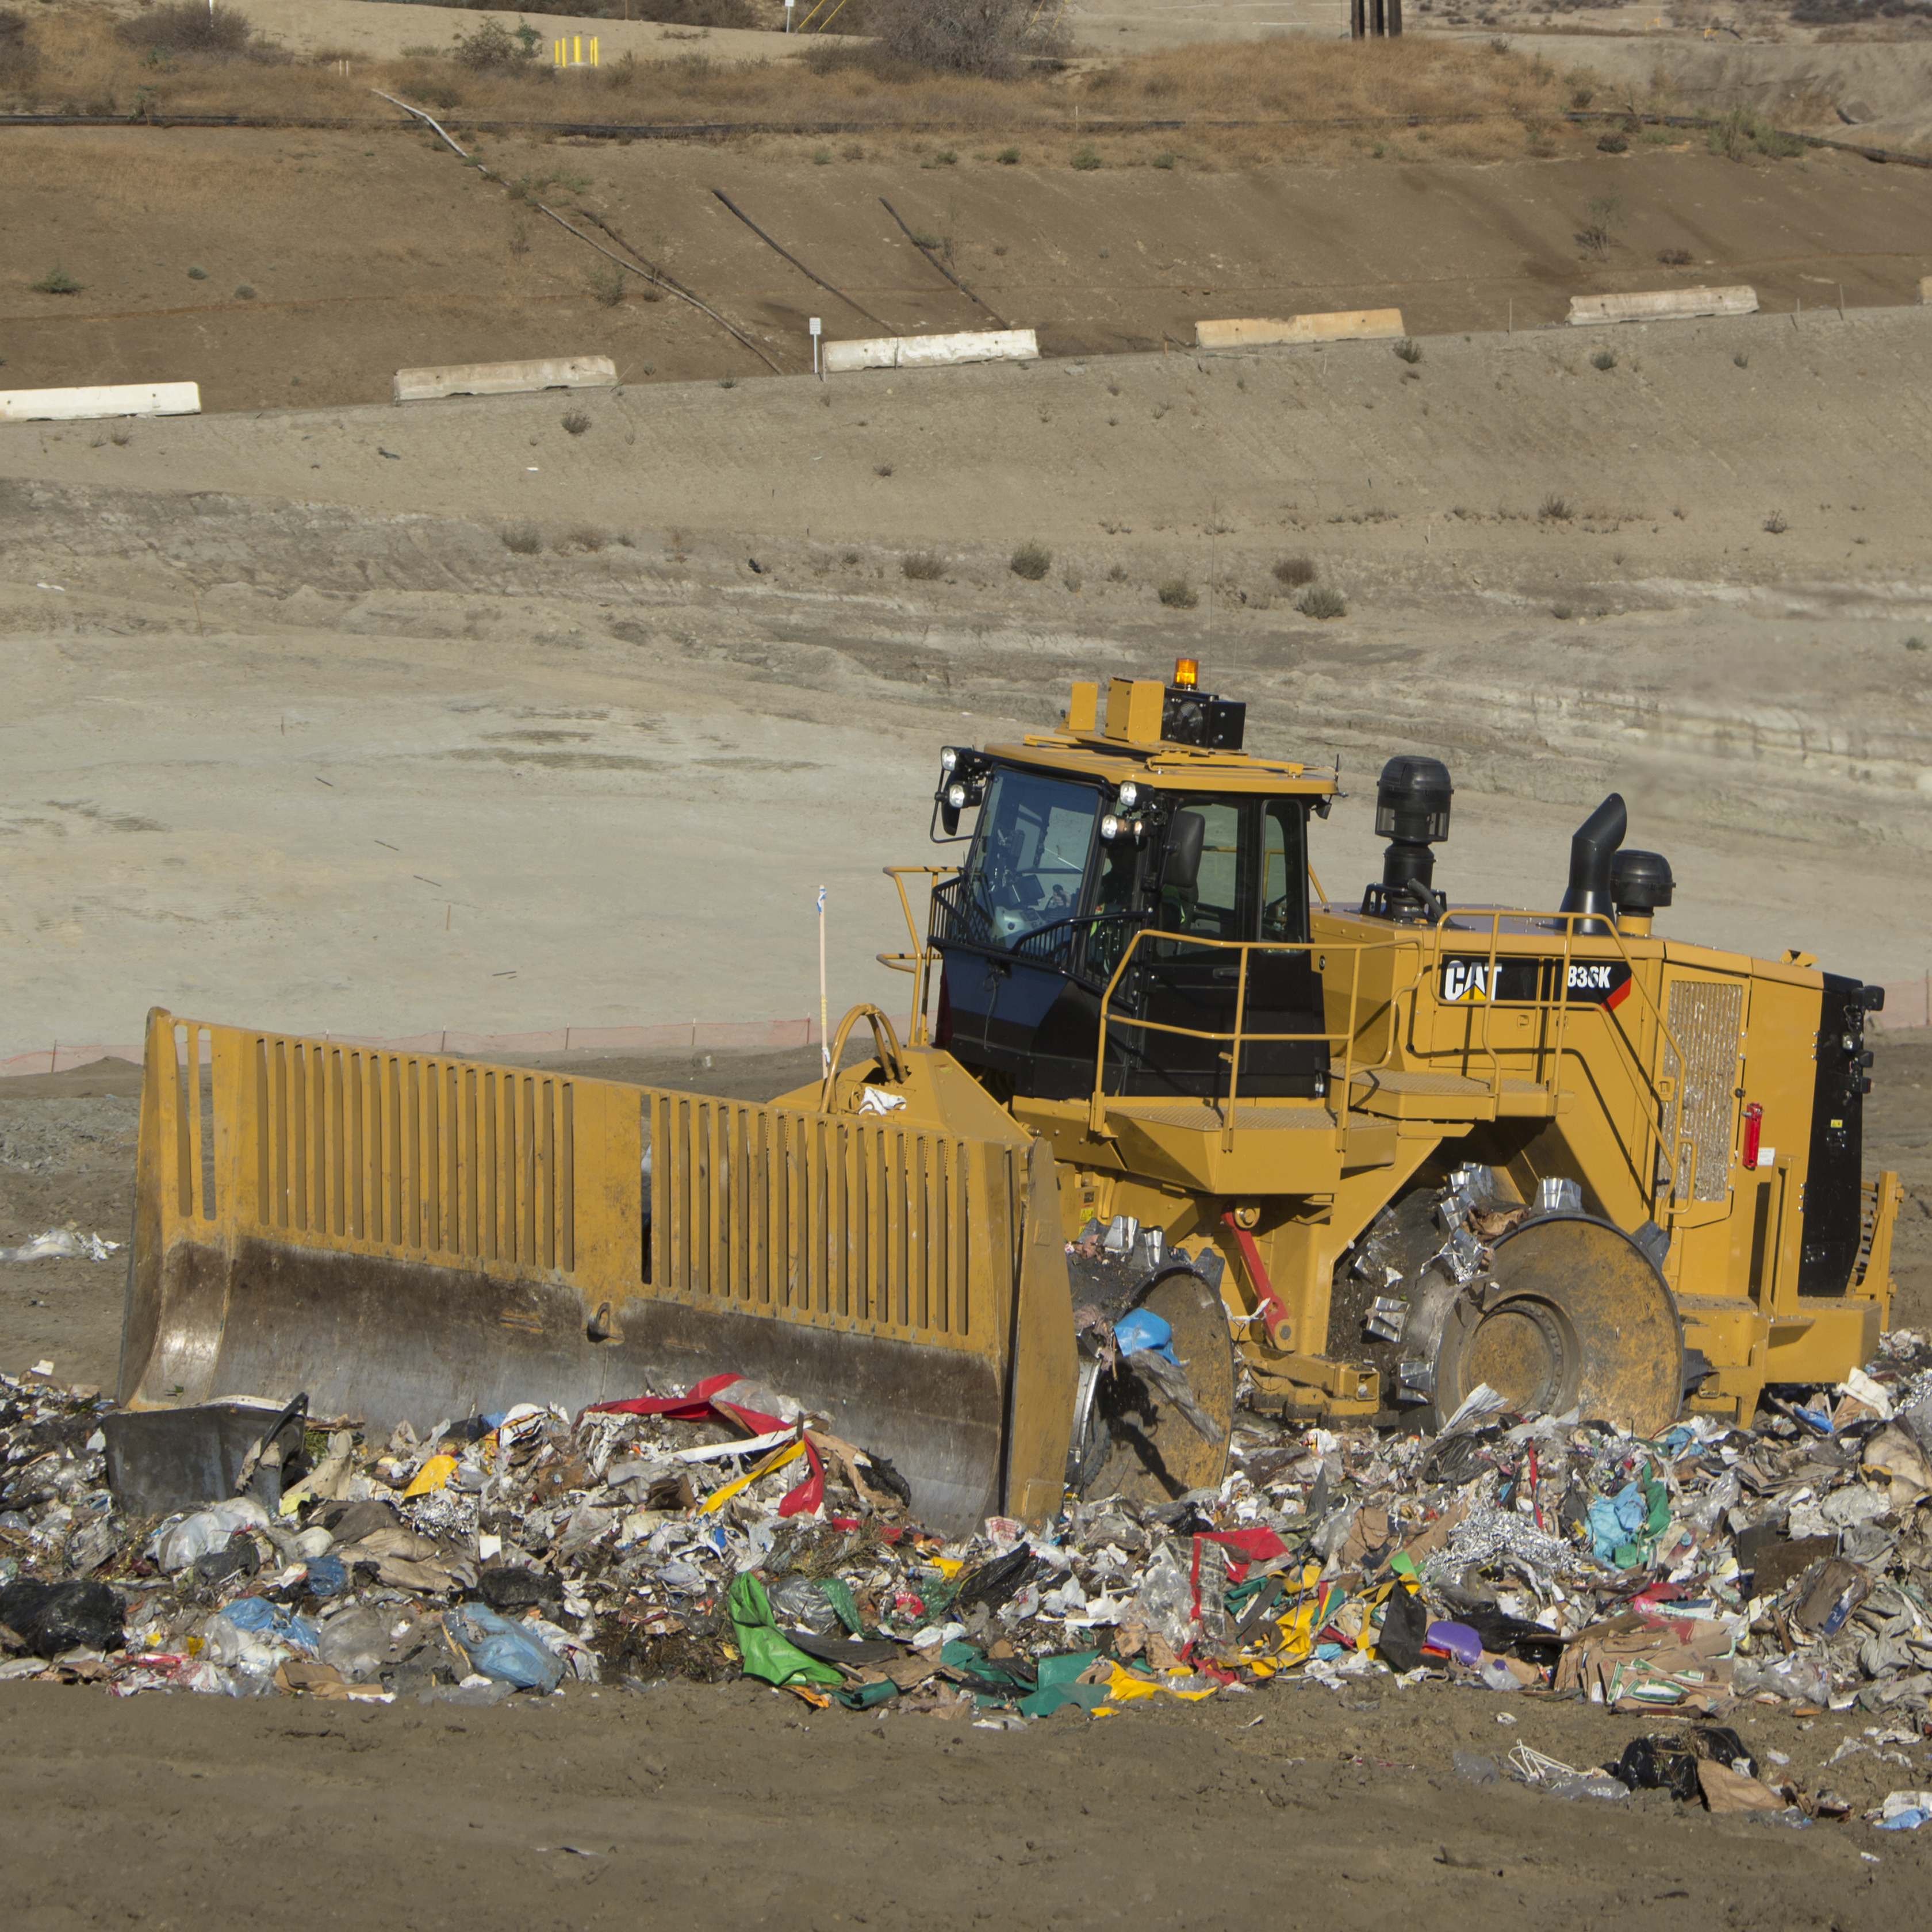 Landfill Compactors Garbage Pictures : Cat k landfill compactor waste management review